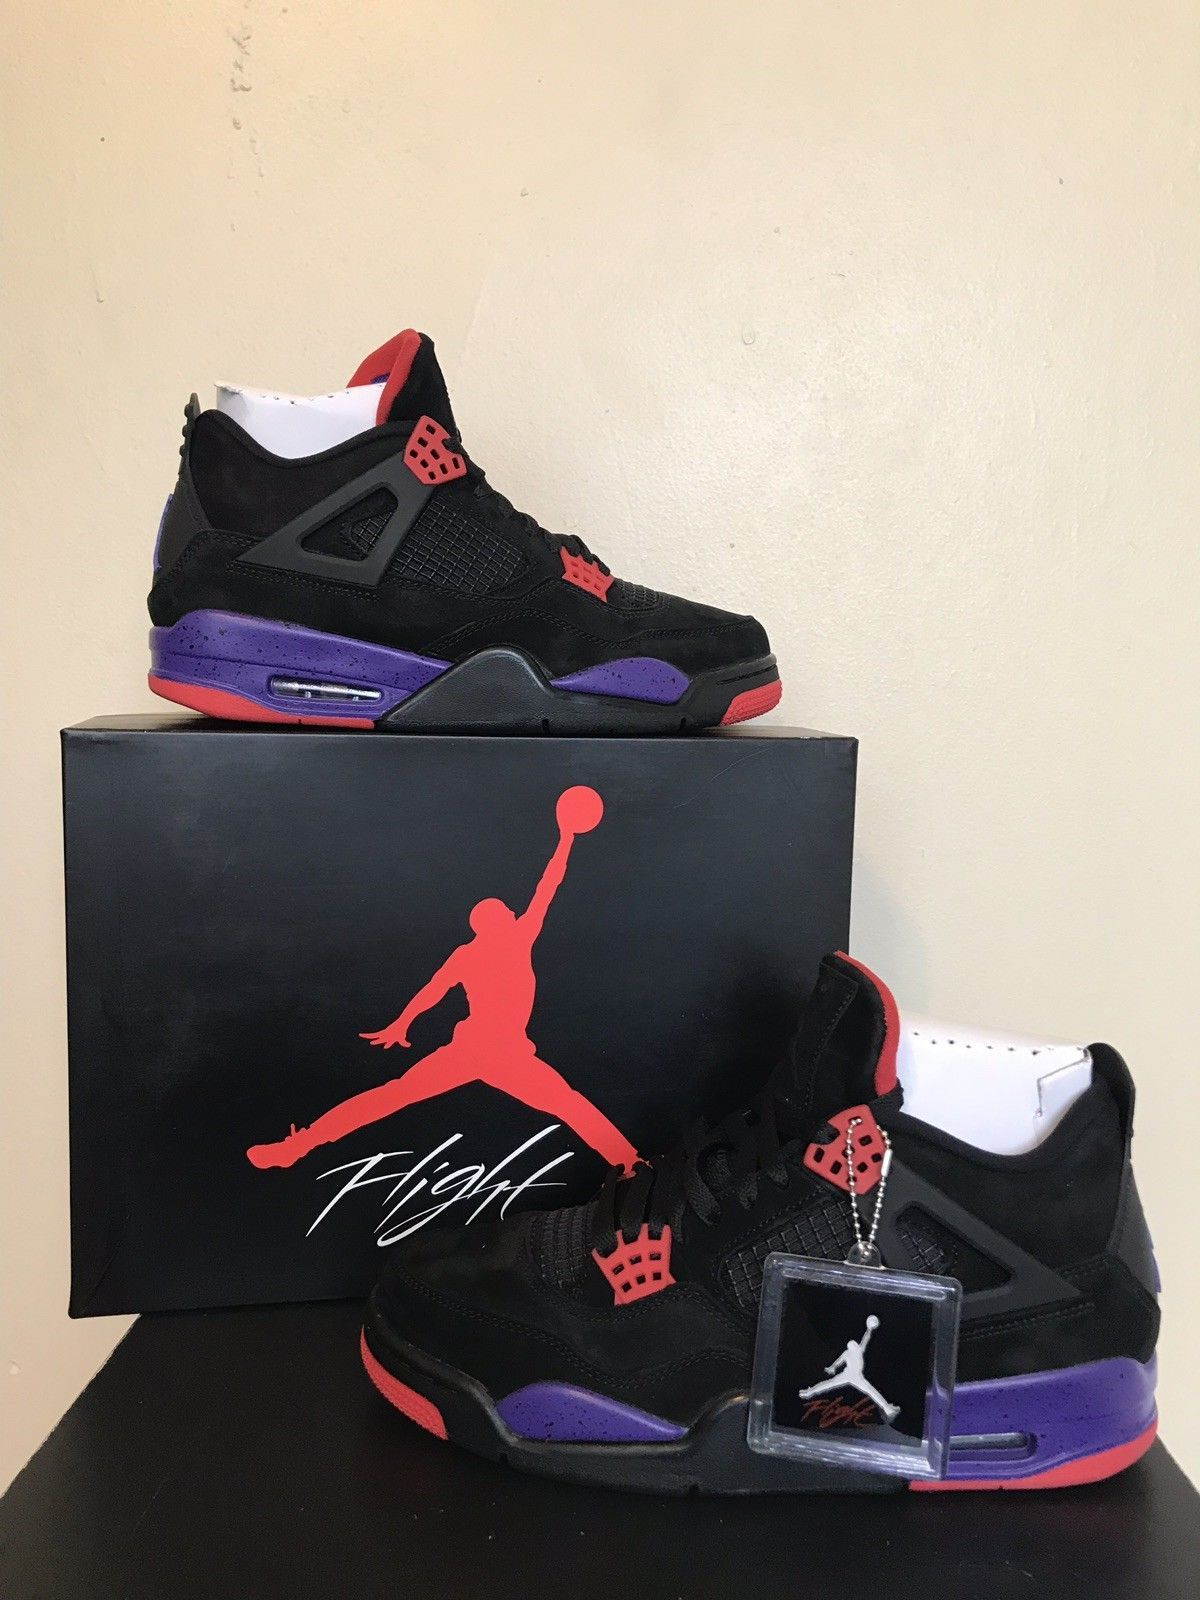 5dae7eb5031 Nike Air Jordan 4 Retro Raptors Court Purple Size 10.5 with Receipt